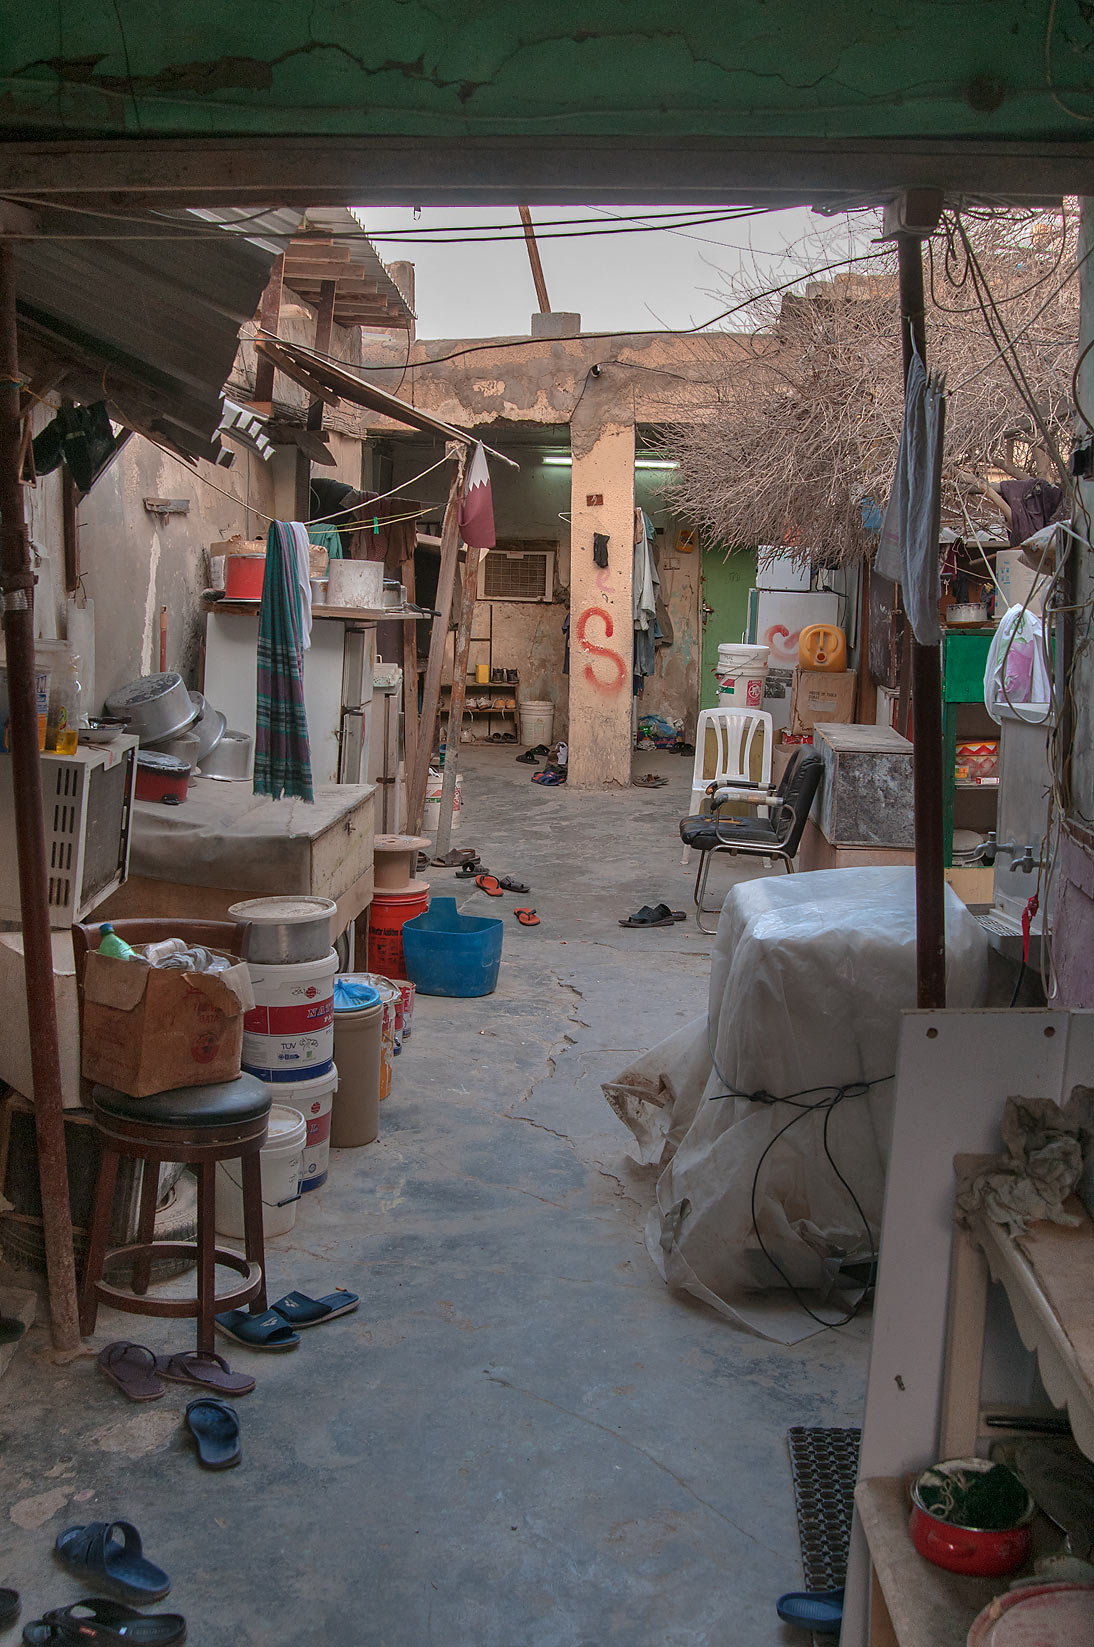 Shared worker's apartment at Umm Wishah St. in Musheirib area. Doha, Qatar